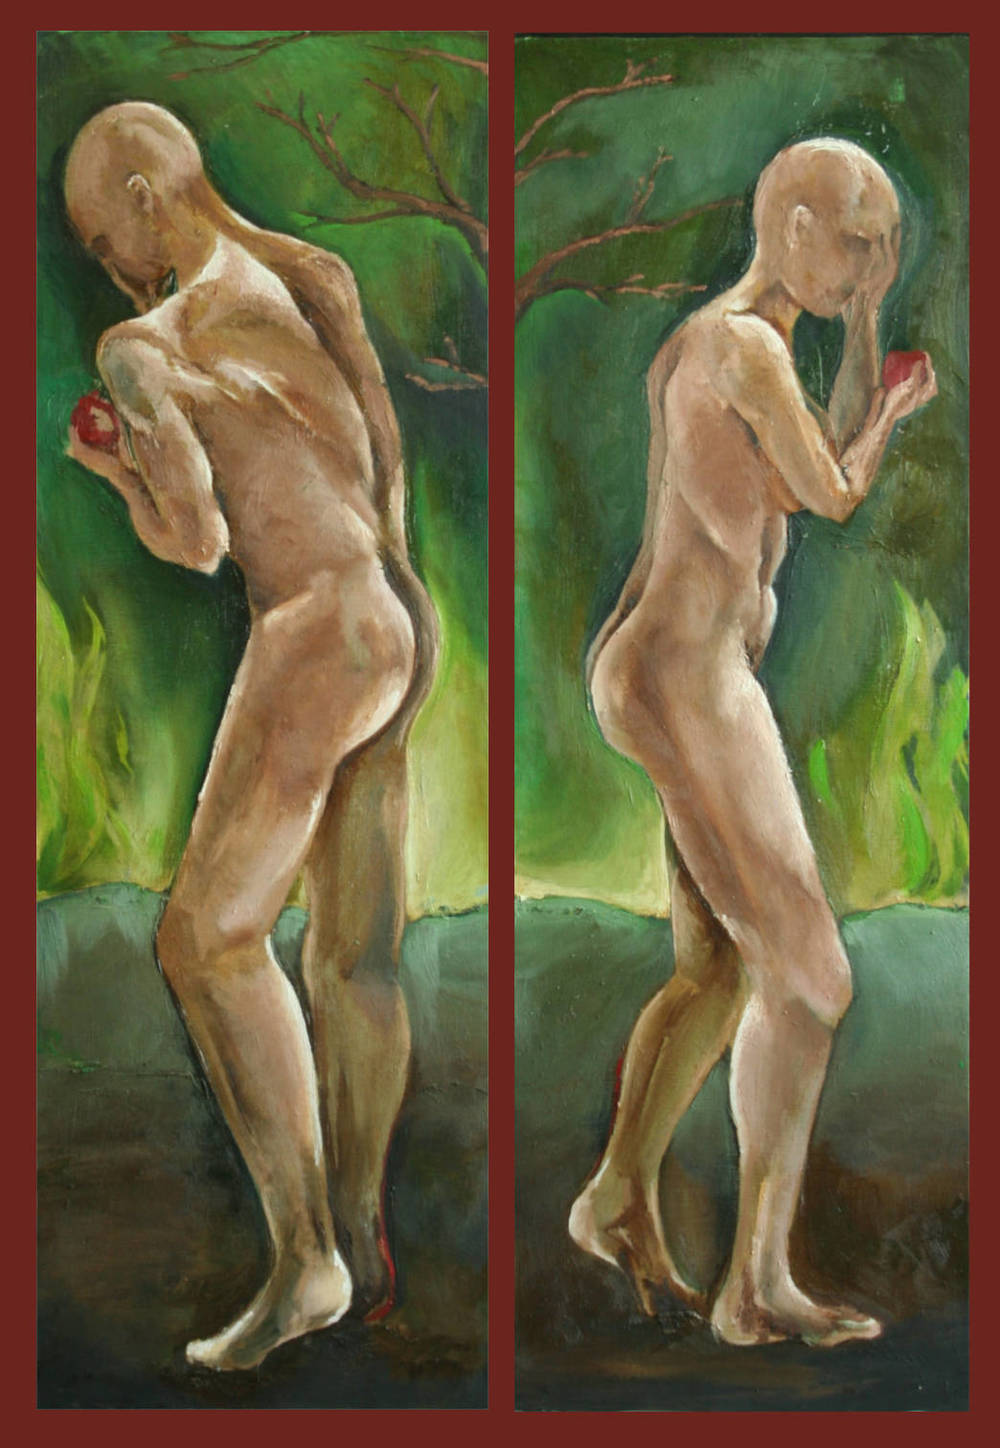 Man and Woman (2008)